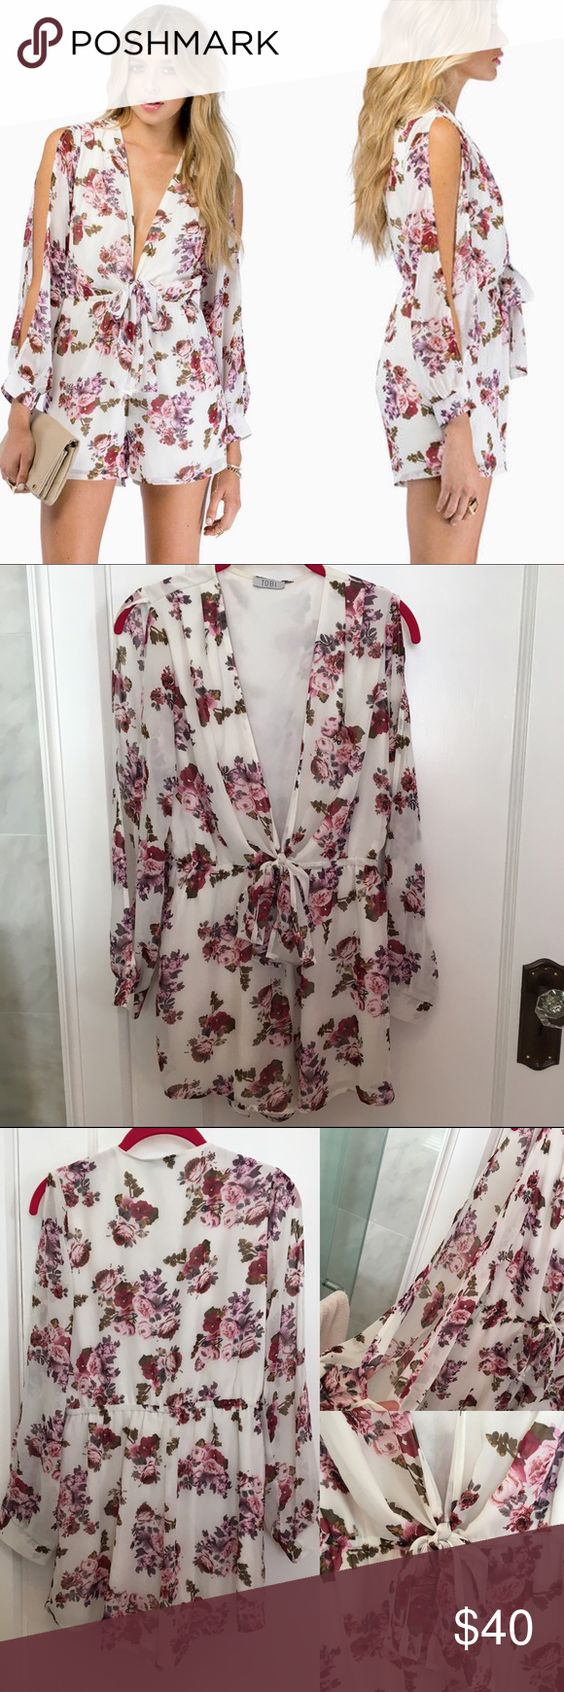 Gorgeous NWOT Tobi Floral Gardenia Romper Sz Large Gorgeous NWOT Tobi Floral Gardenia Romper Size Large. This romper is just a beauty. I never wore it because it cut down too low and my chest is too big. Waist is elastic which is awesome and bow can be adjusted to your liking. Sleeves have slits down the side so your arm is exposed. Tobi doesn't include tags on their merchandise, their clothes only come in plastic bags. But this is brand new and unworn. Tobi Pants Jumpsuits & Rompers